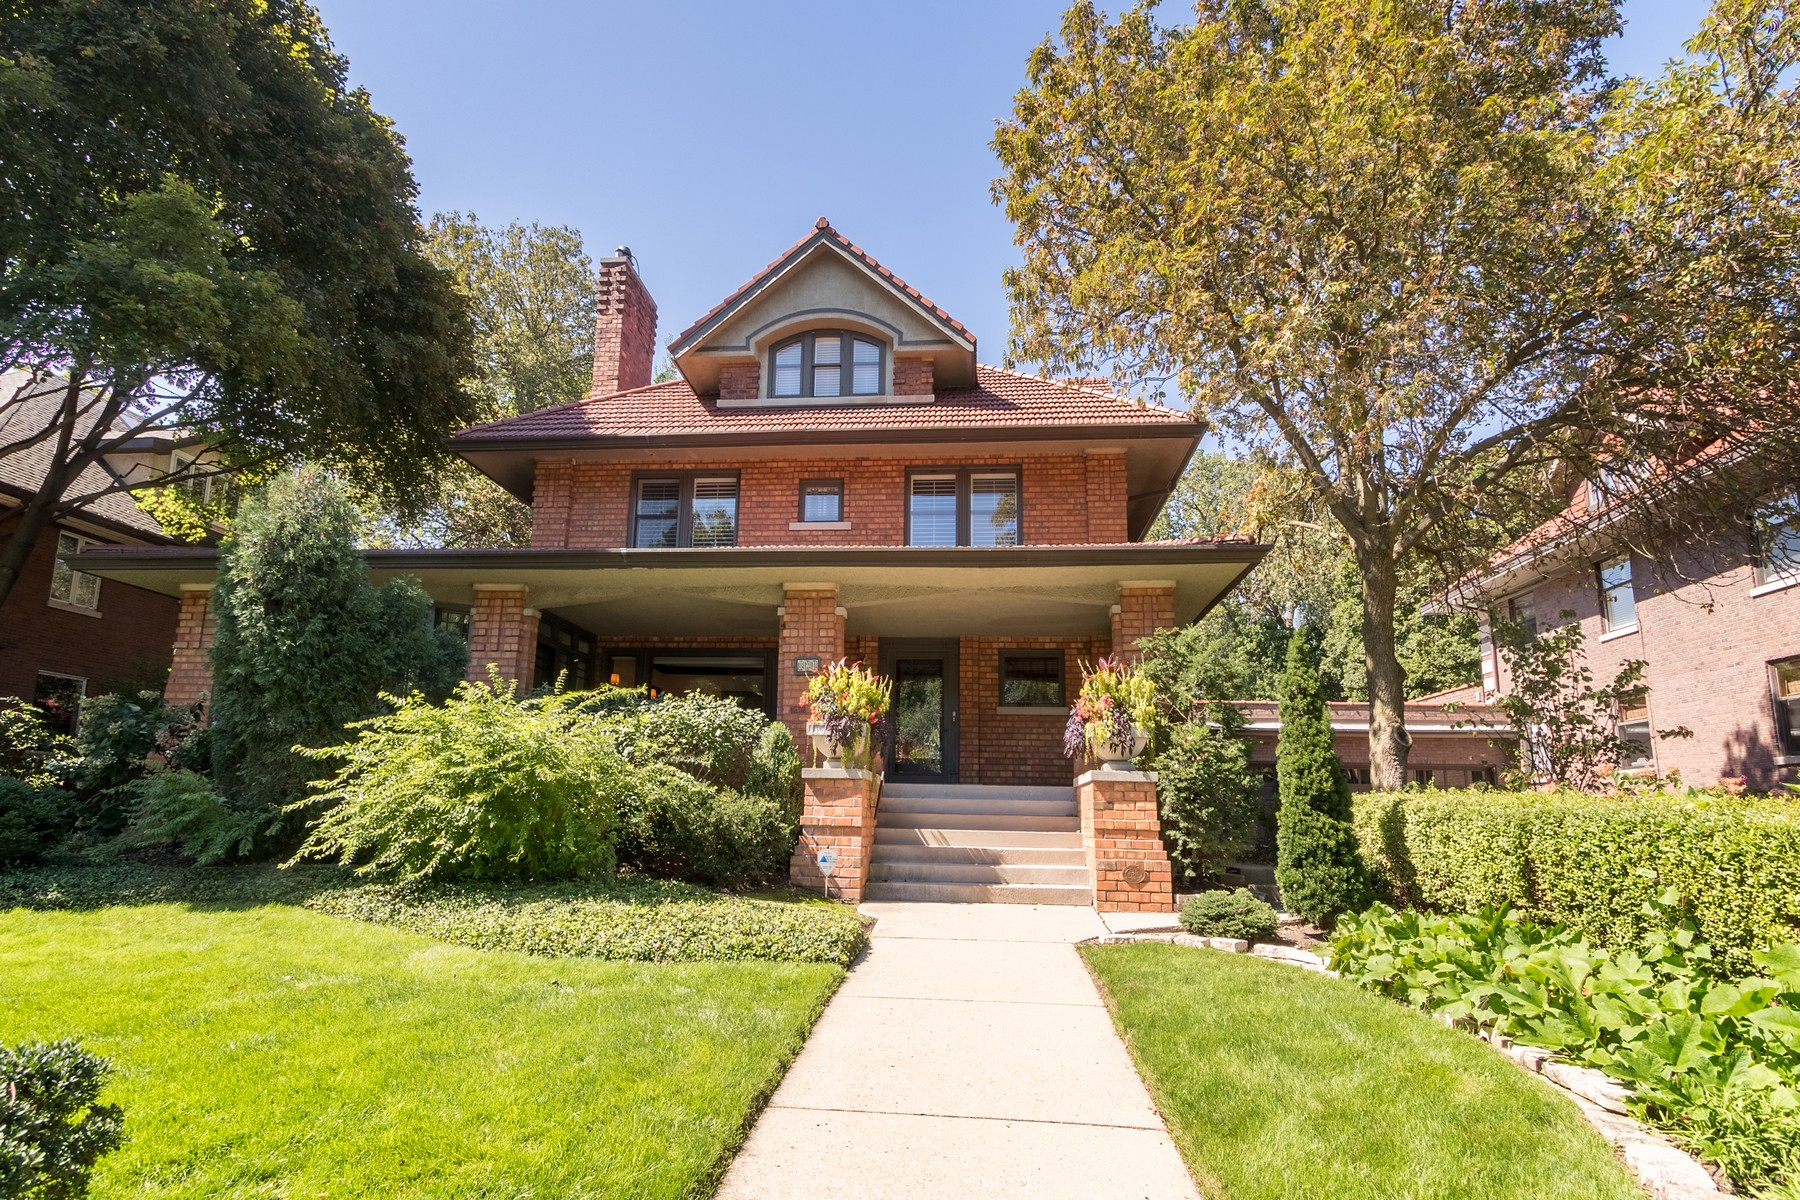 Single Family Home for Active at Stunning Landmark Home 824 Sheridan Road Evanston, Illinois 60202 United States